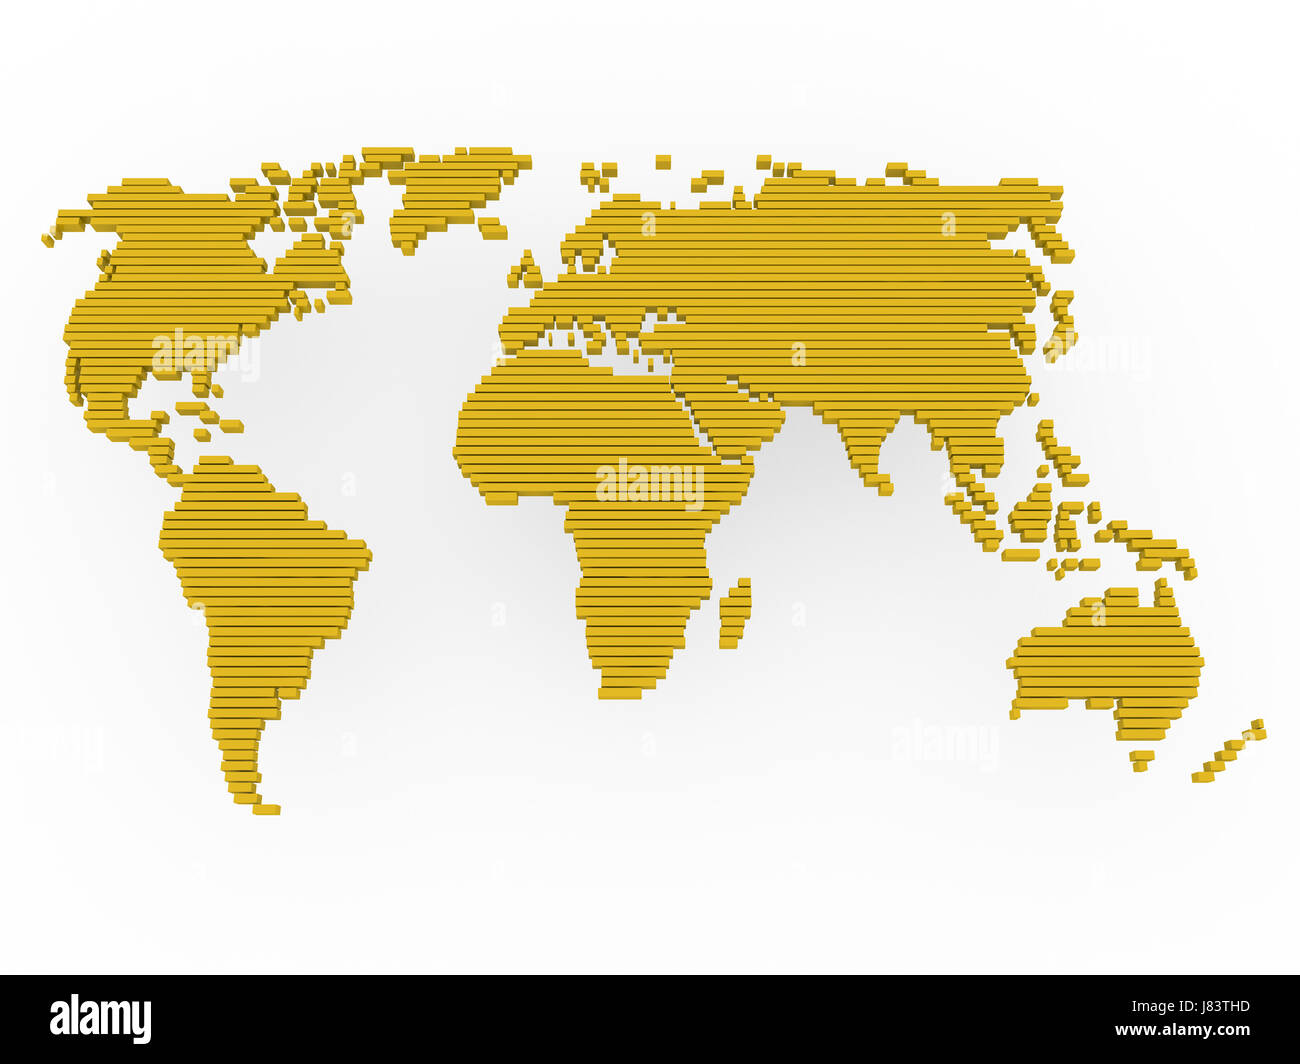 Africa europe america globe planet earth world map atlas map of the africa europe america globe planet earth world map atlas map of the world gold gumiabroncs Gallery